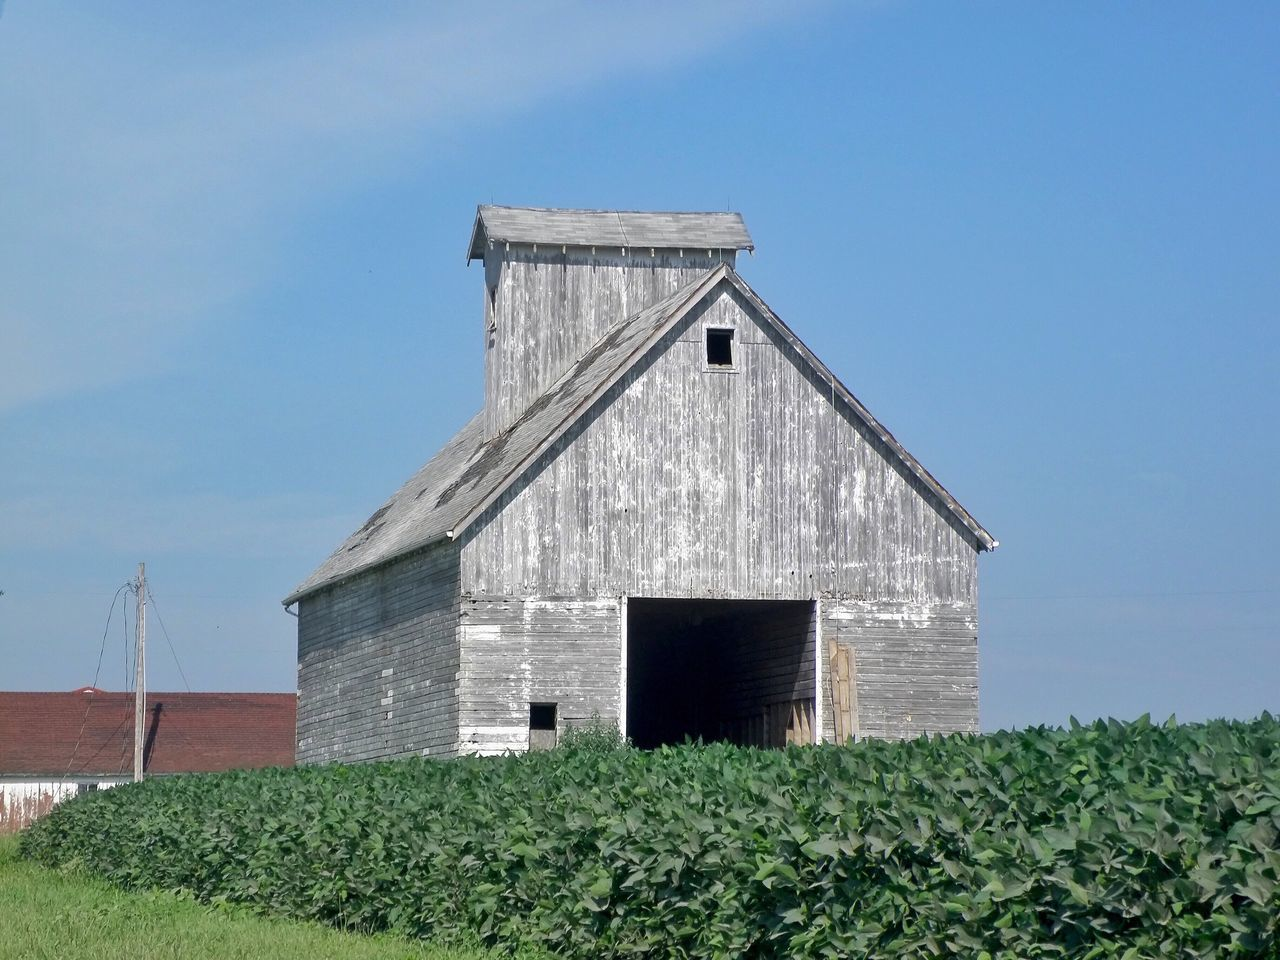 Hoosier Barn Architecture Barn Blue Built Structure Cloud Day Exterior Field Grass Grassy Green Color Growth Indiana Landscape Low Angle View Nature No People Outdoors Plant Rural Scene Sky Tranquil Scene Tranquility